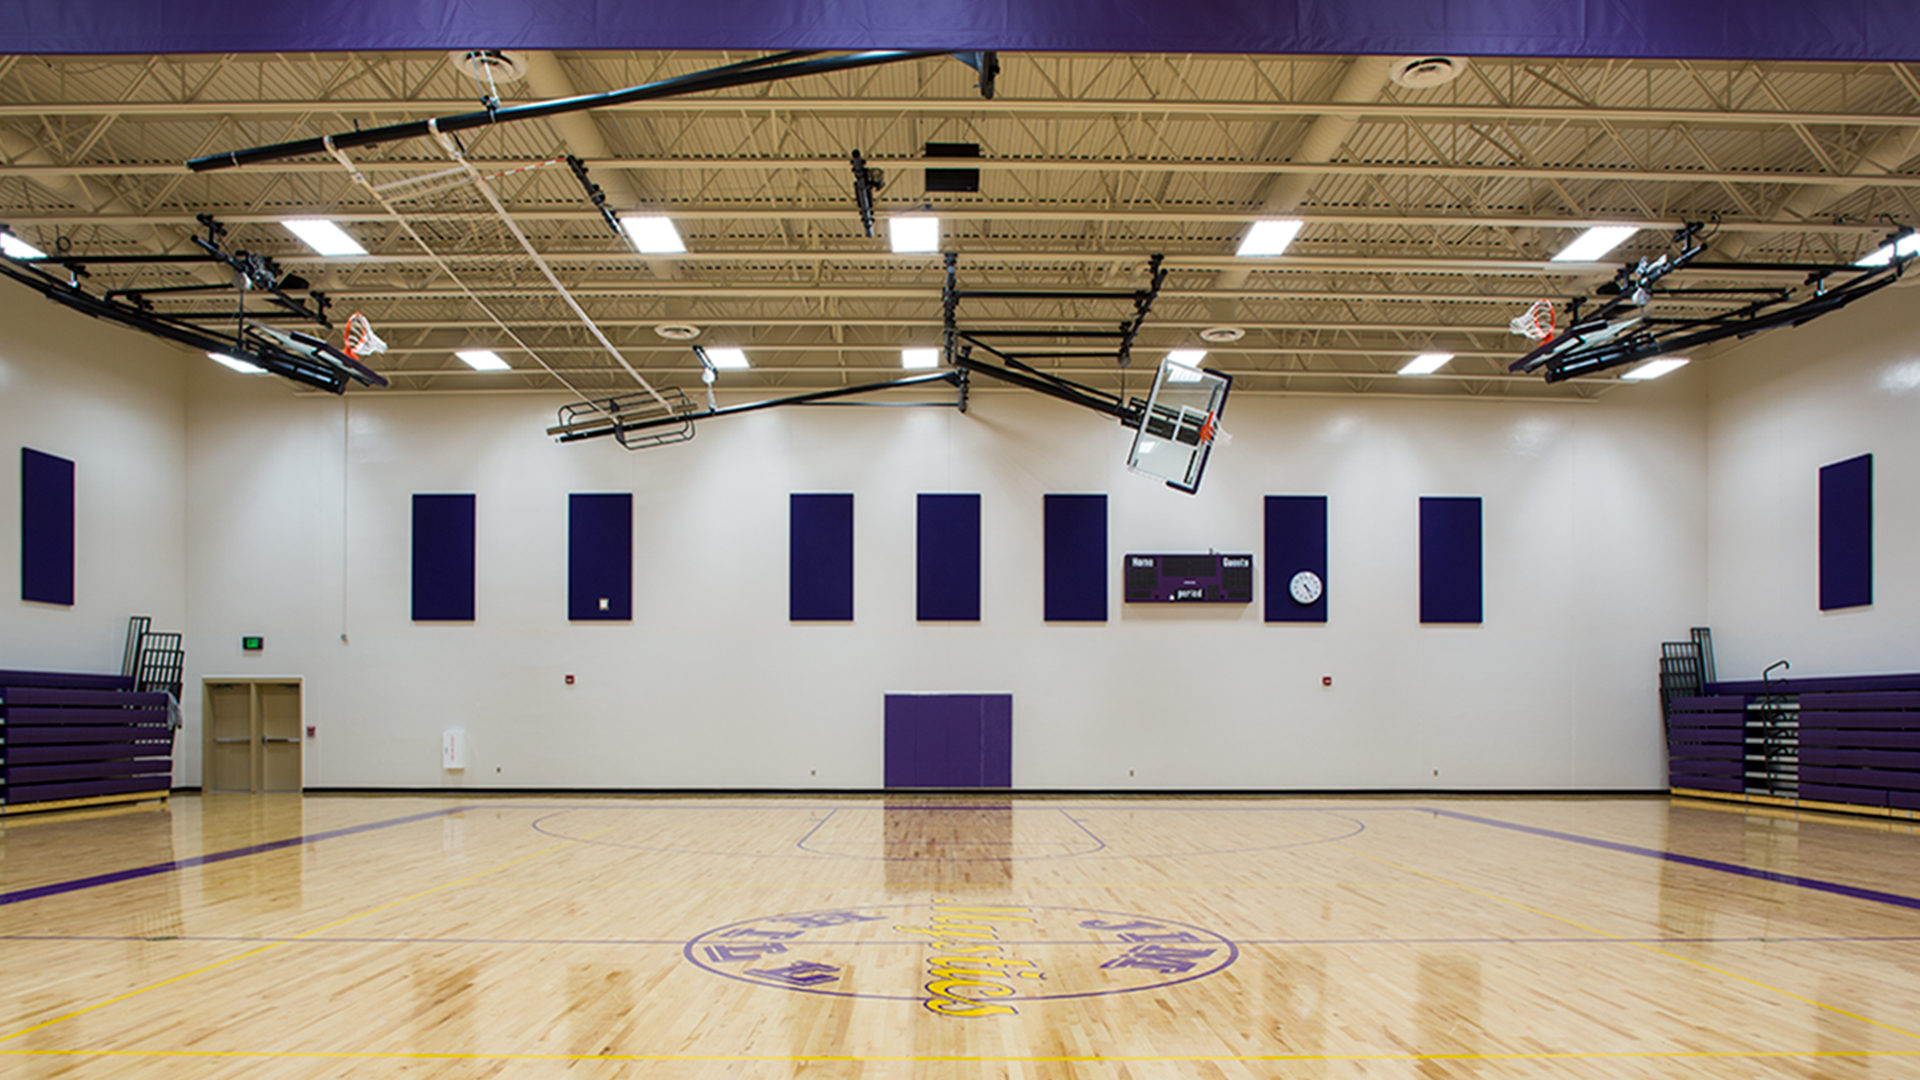 Jim Hill Middle School Minot ND Interior Gymnasium